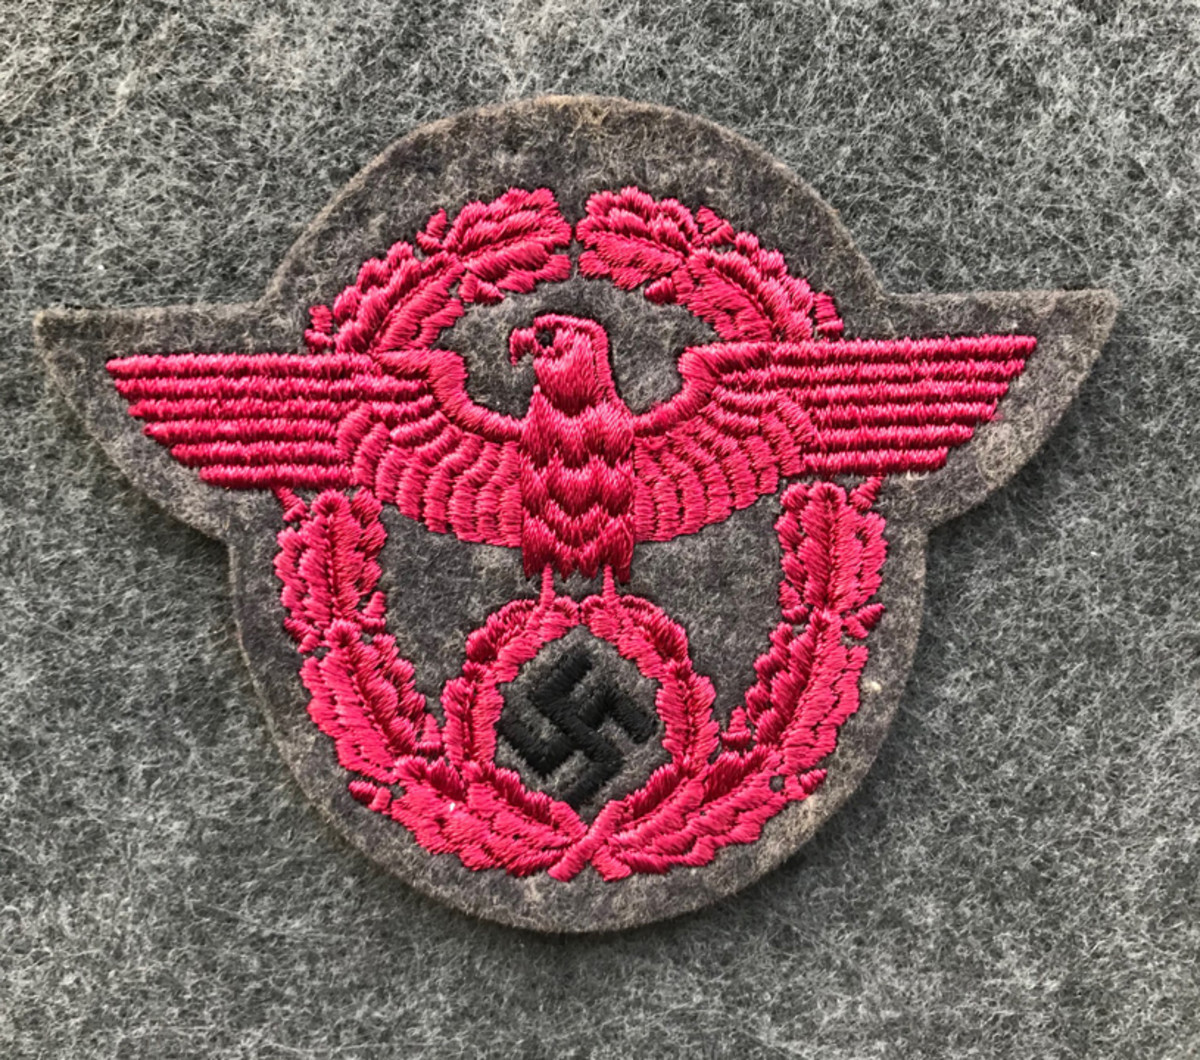 A German Enlisted Feuerschutzpolizei/Fire Protection Police sleeve eagle. This type of police patch is constructed with a machine embroidered pink eagle with a black swastika on grey wool cloth.